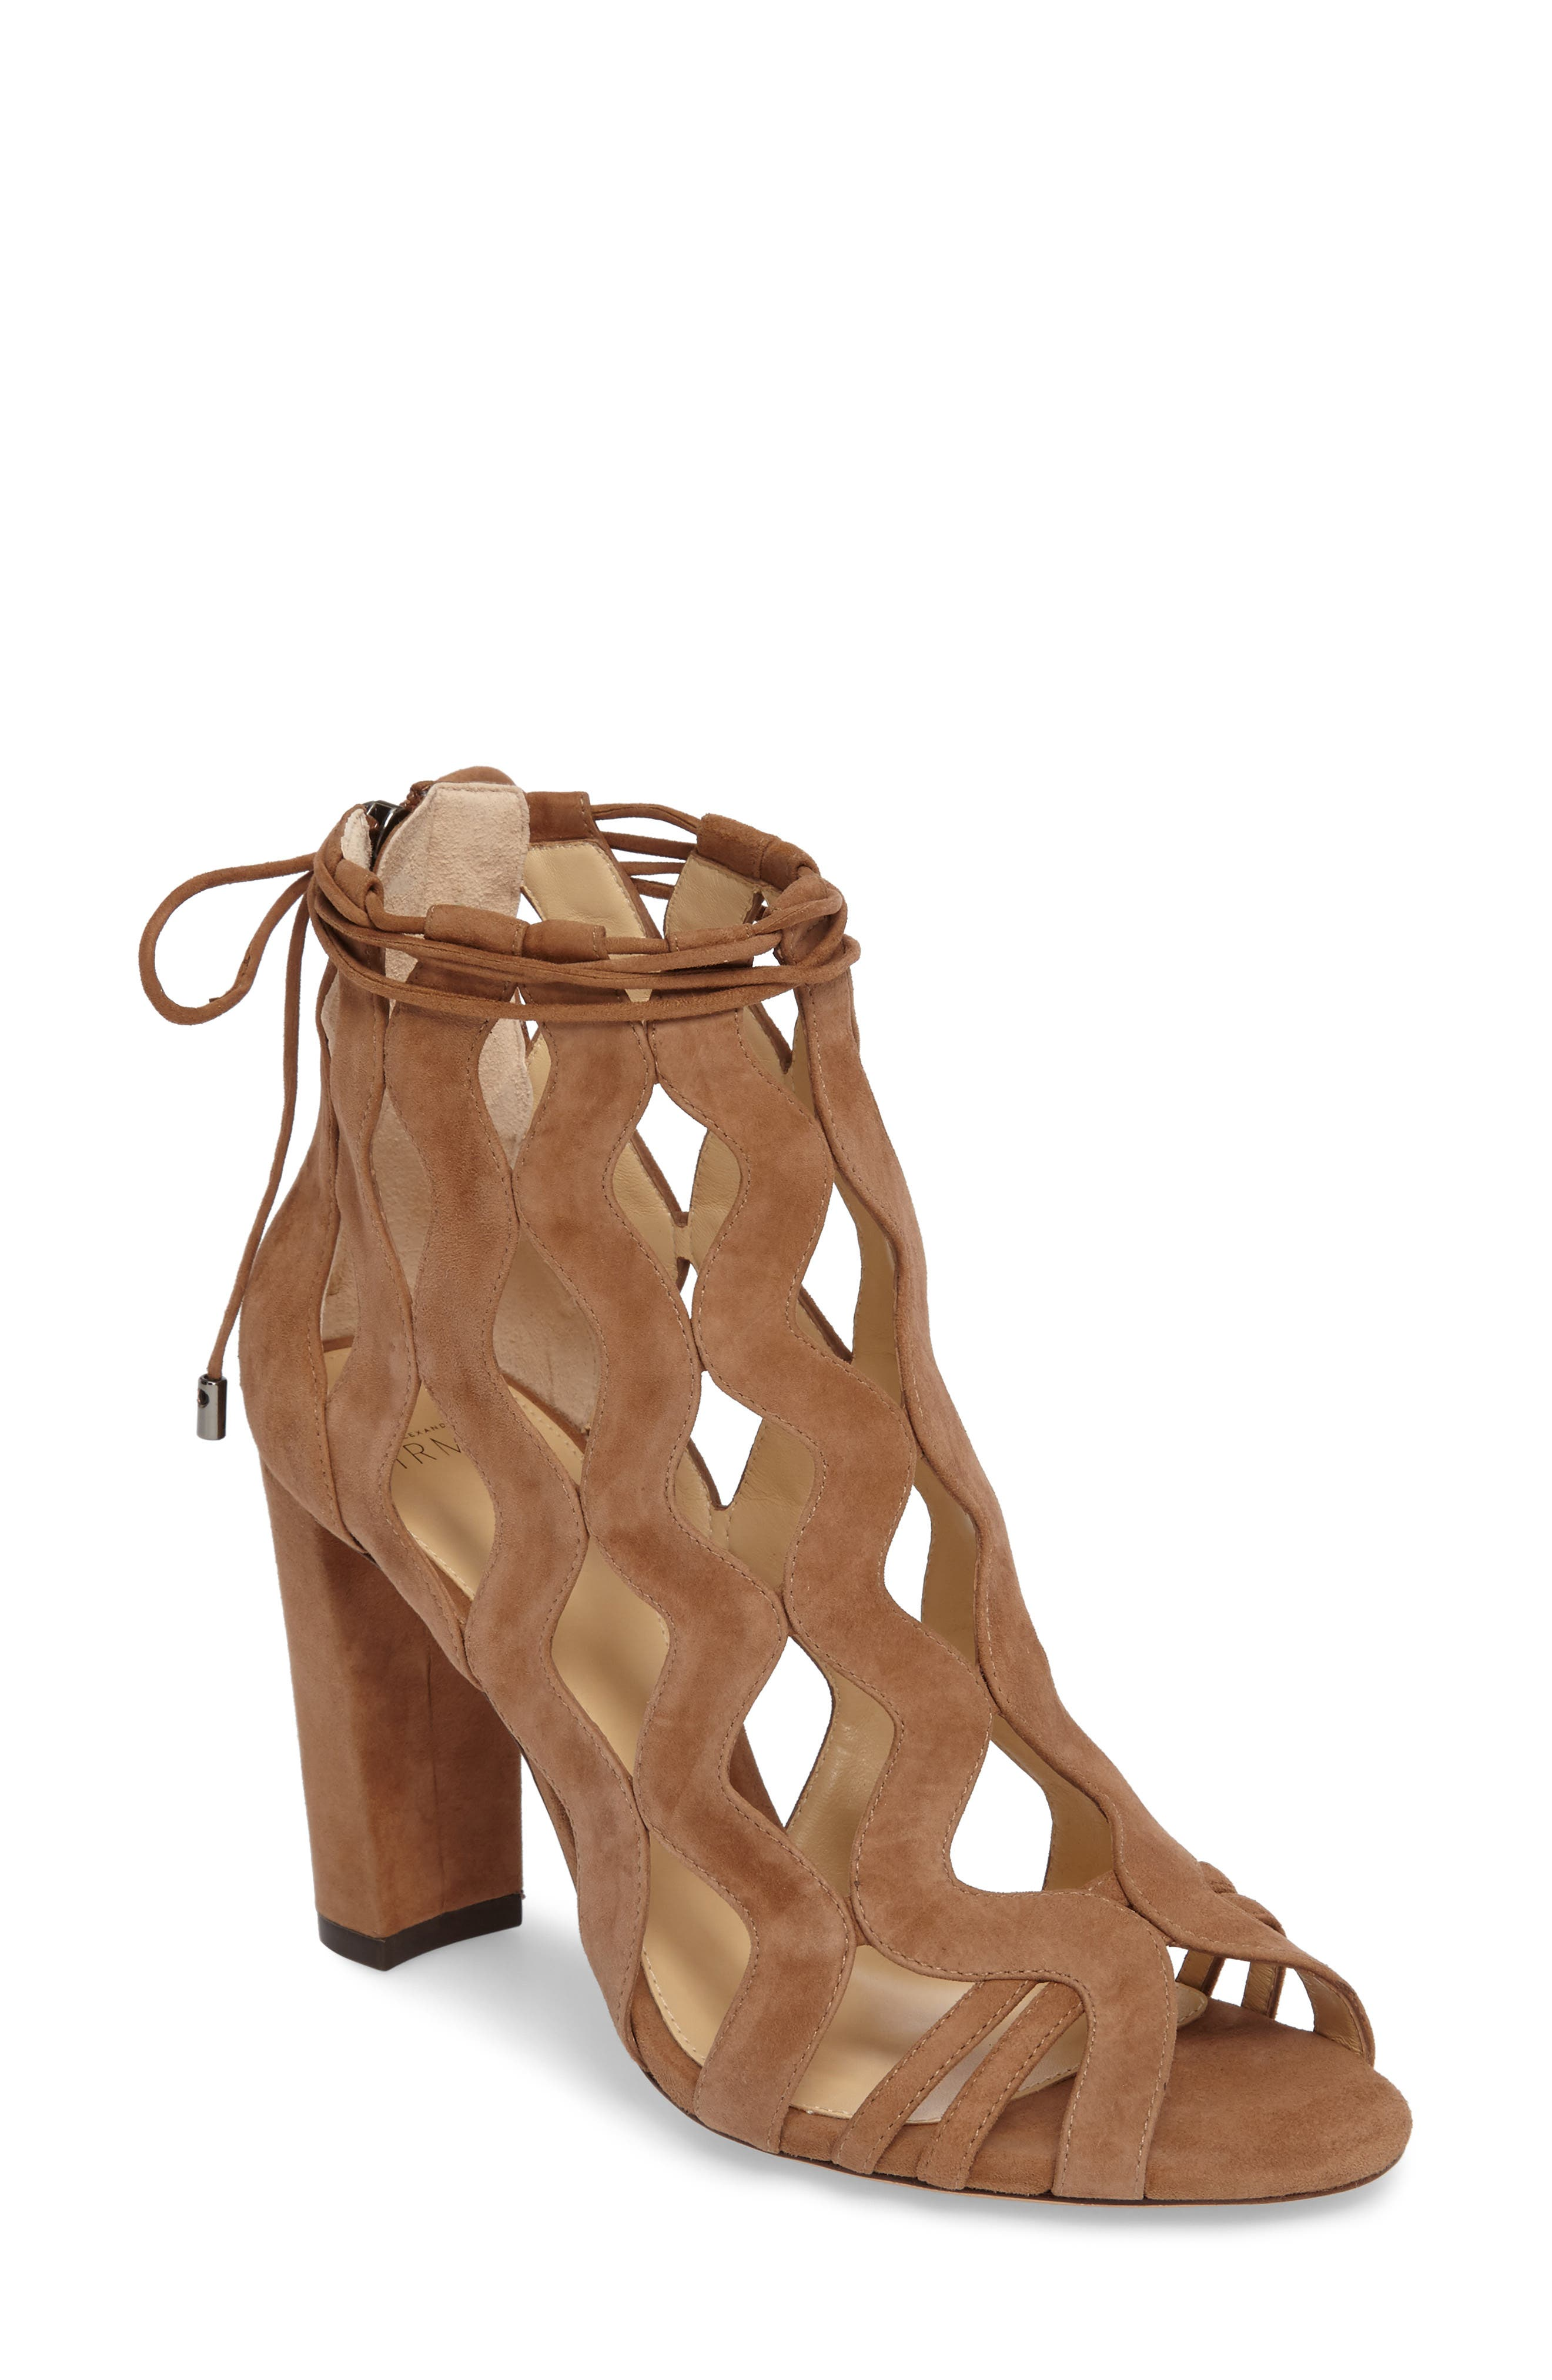 Loretta Cage Bootie,                         Main,                         color, Light Beige